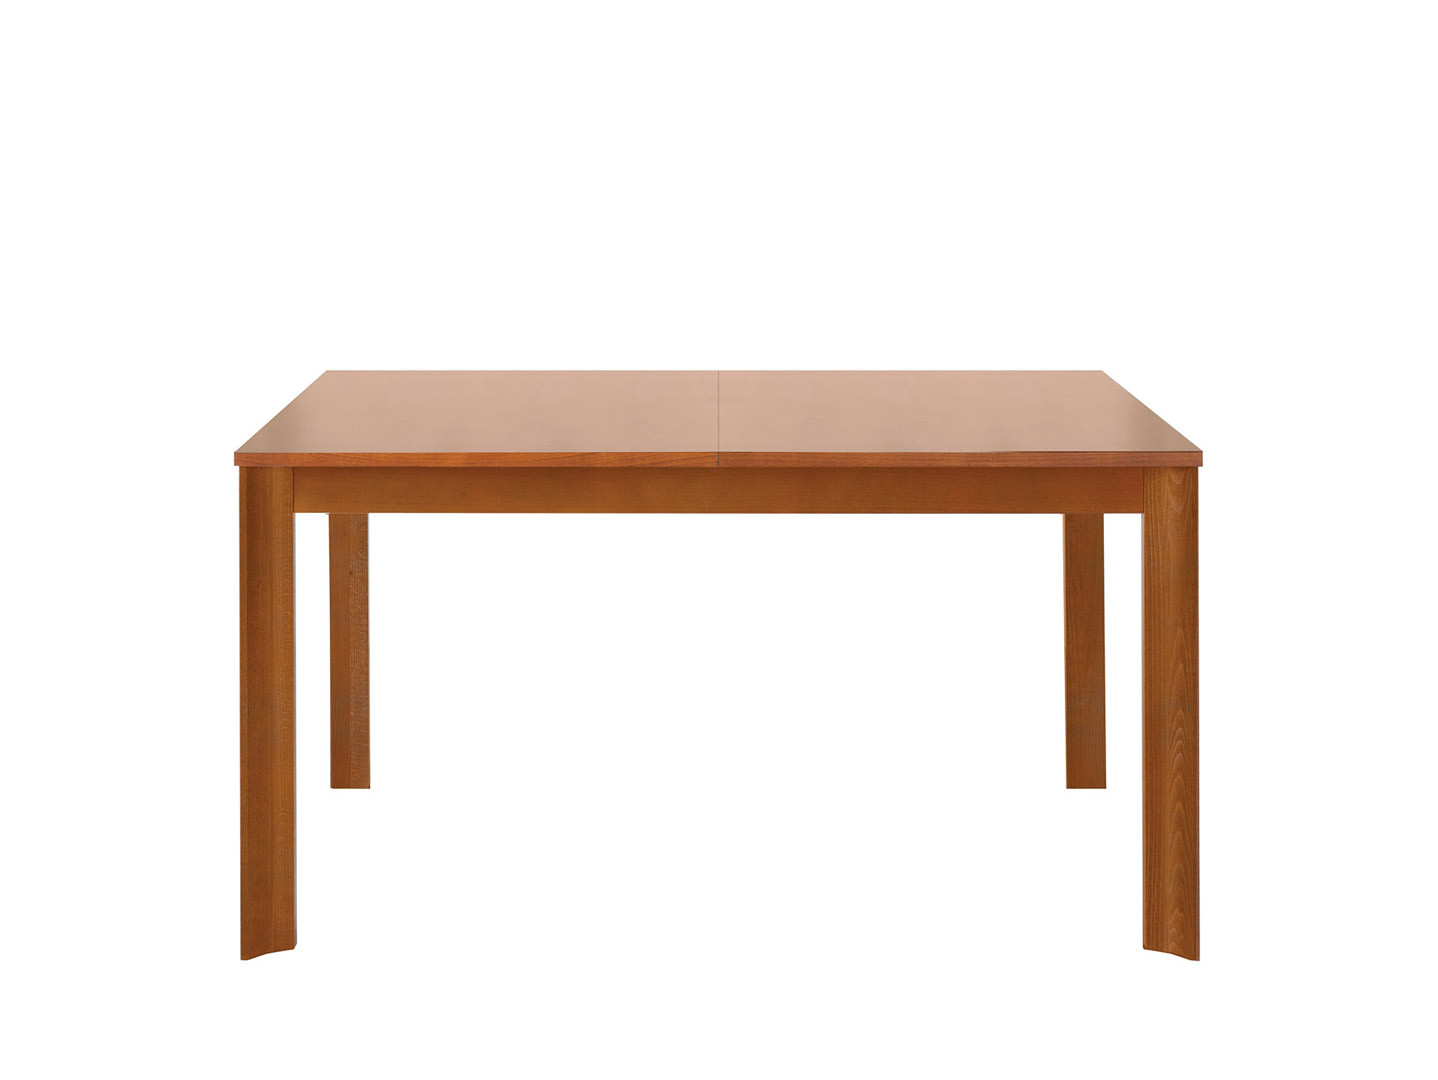 data/Alevil/ALEVIL DINING TABLE_a.jpg